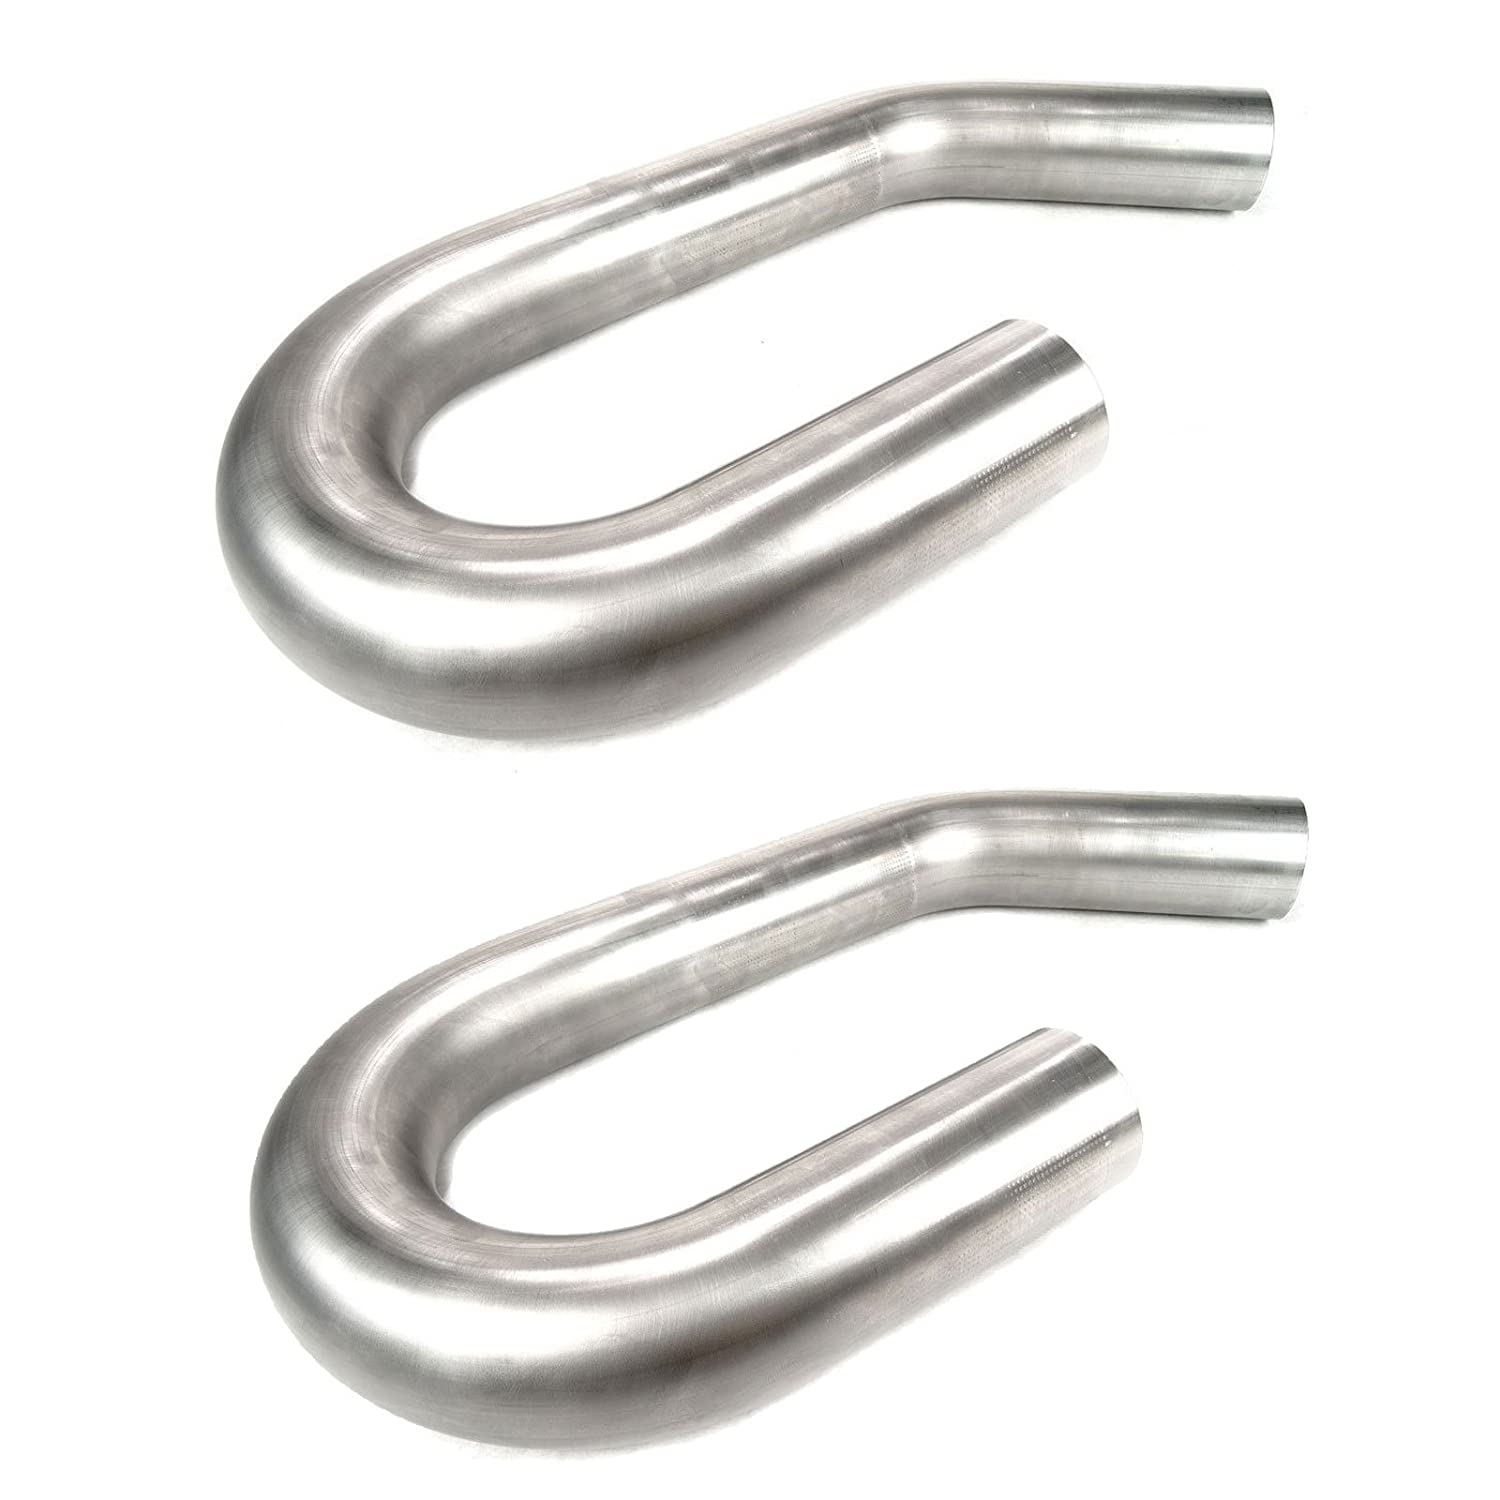 Squirrelly 1.75 180 2 Pack 45 Degree UJ 304 Stainless Steel Mandrel Bends Pipe Exhaust Piping